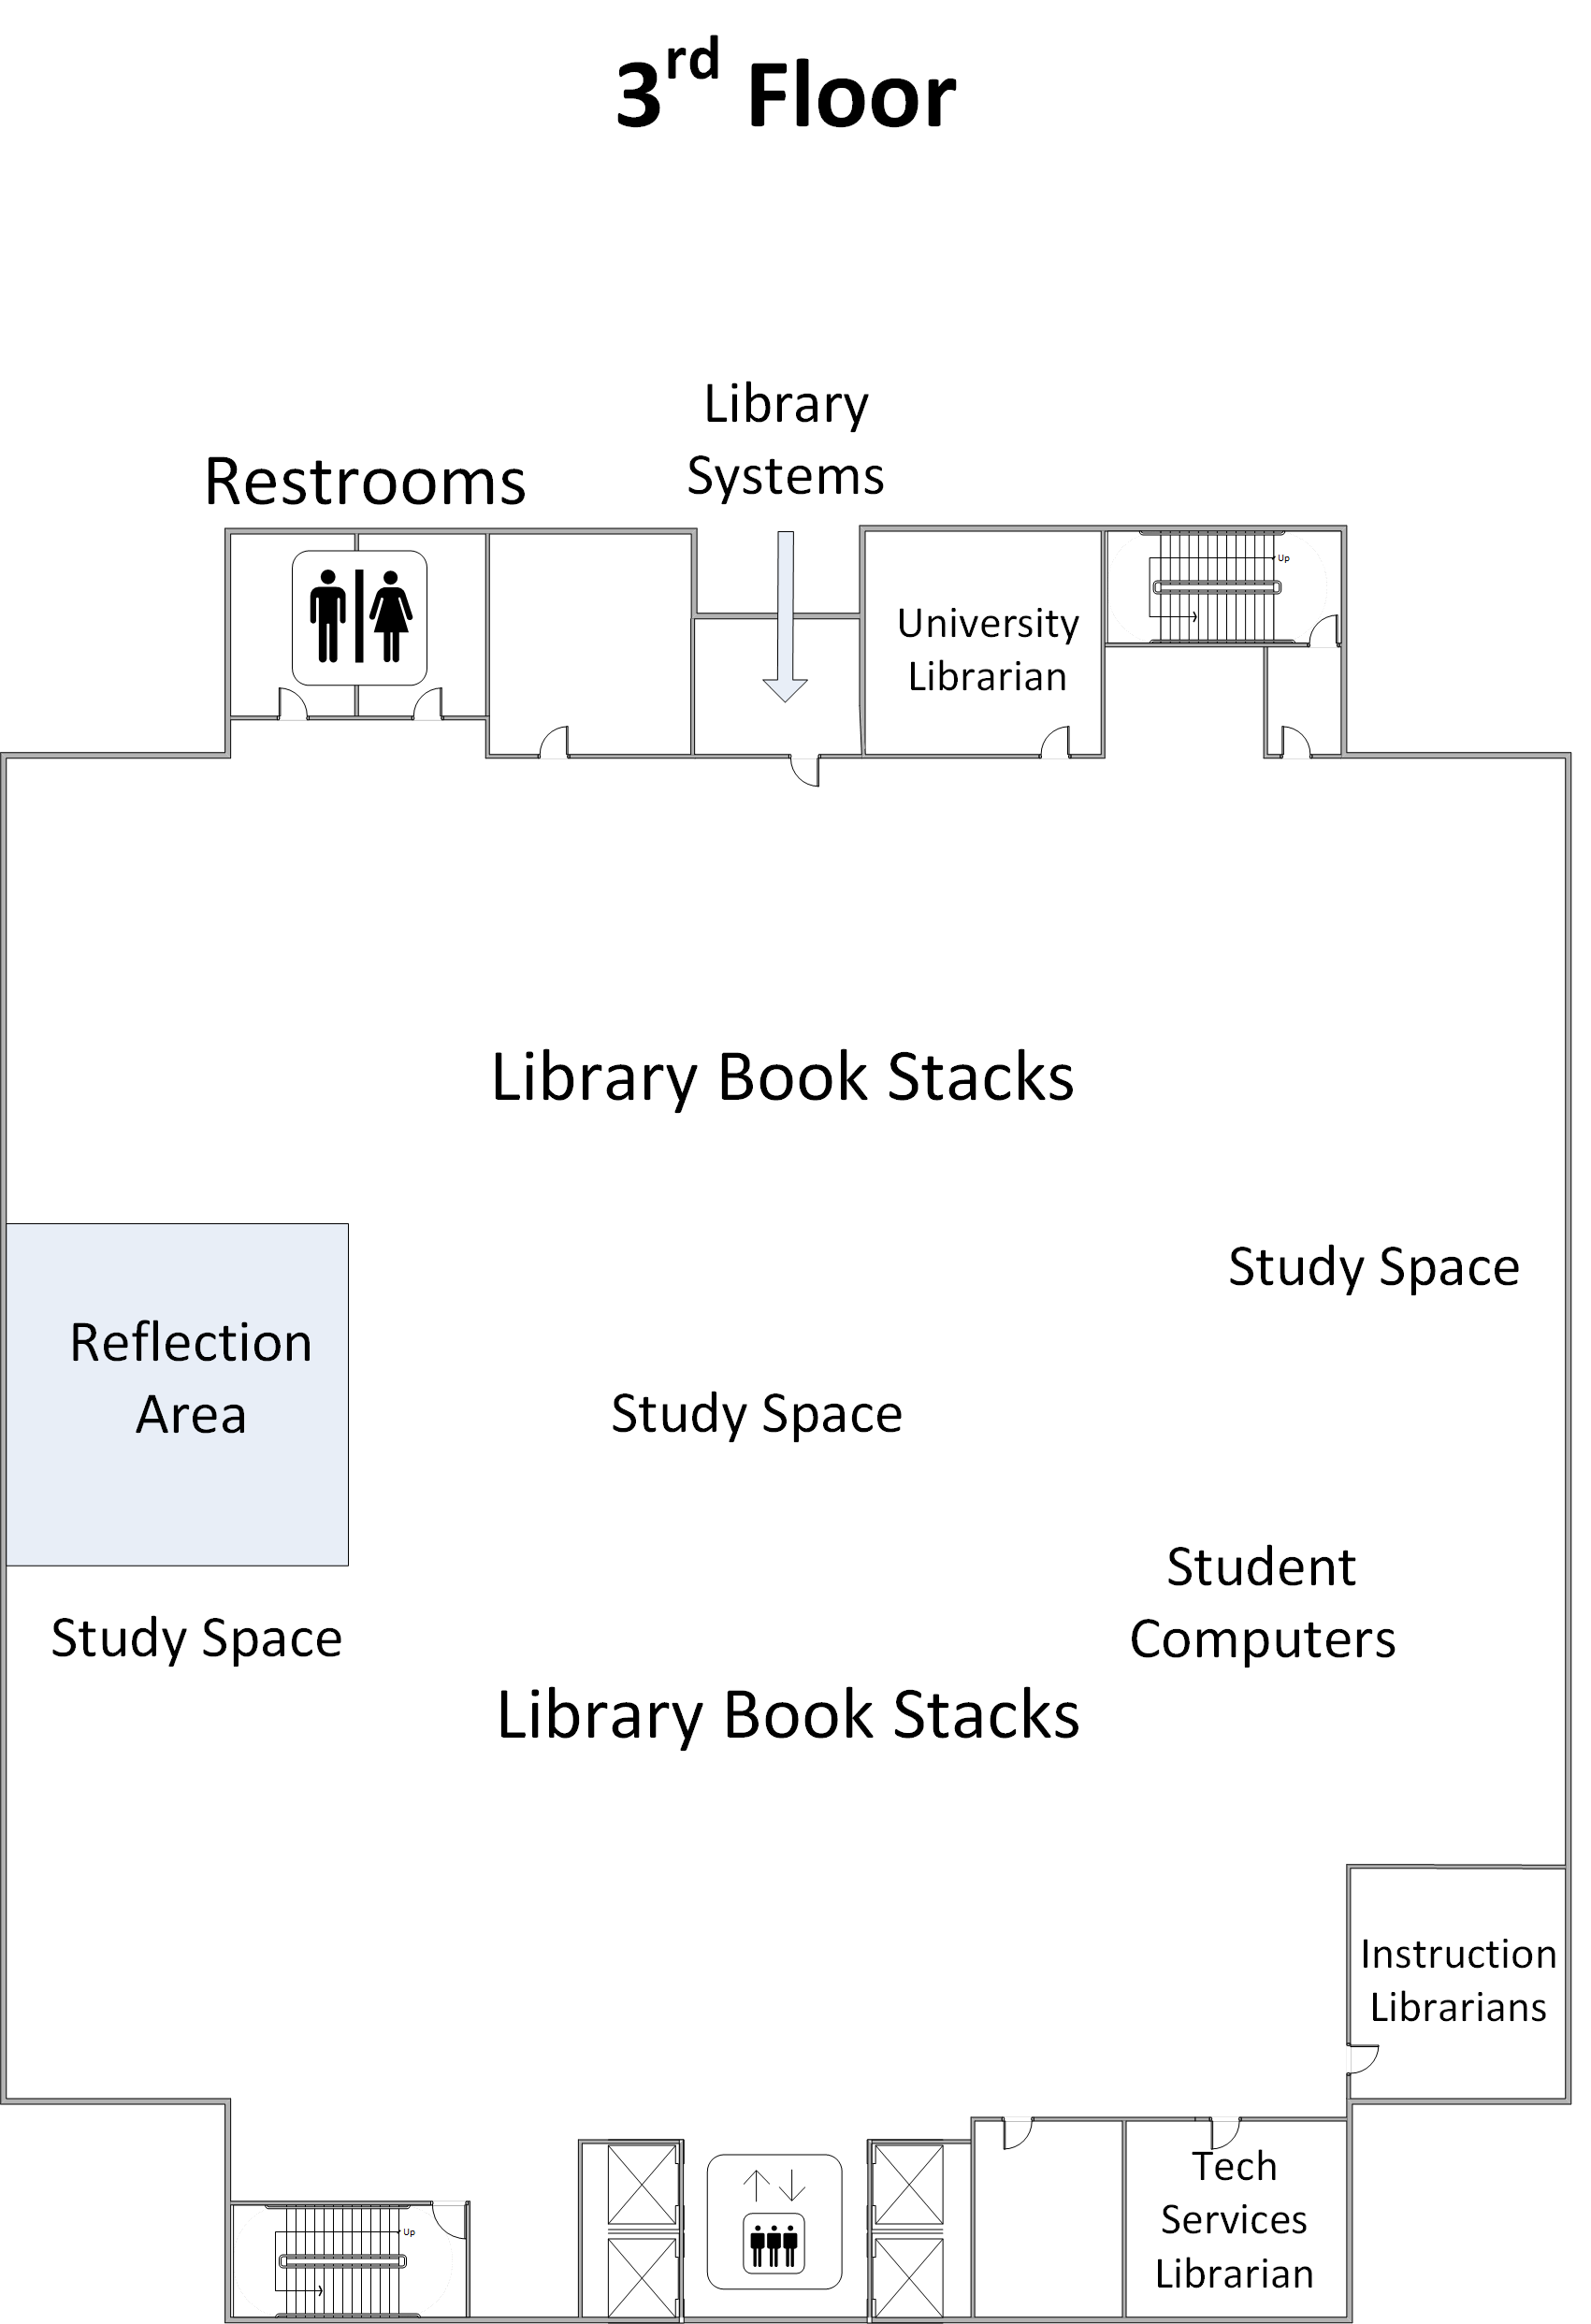 Library 3rd Floor Map